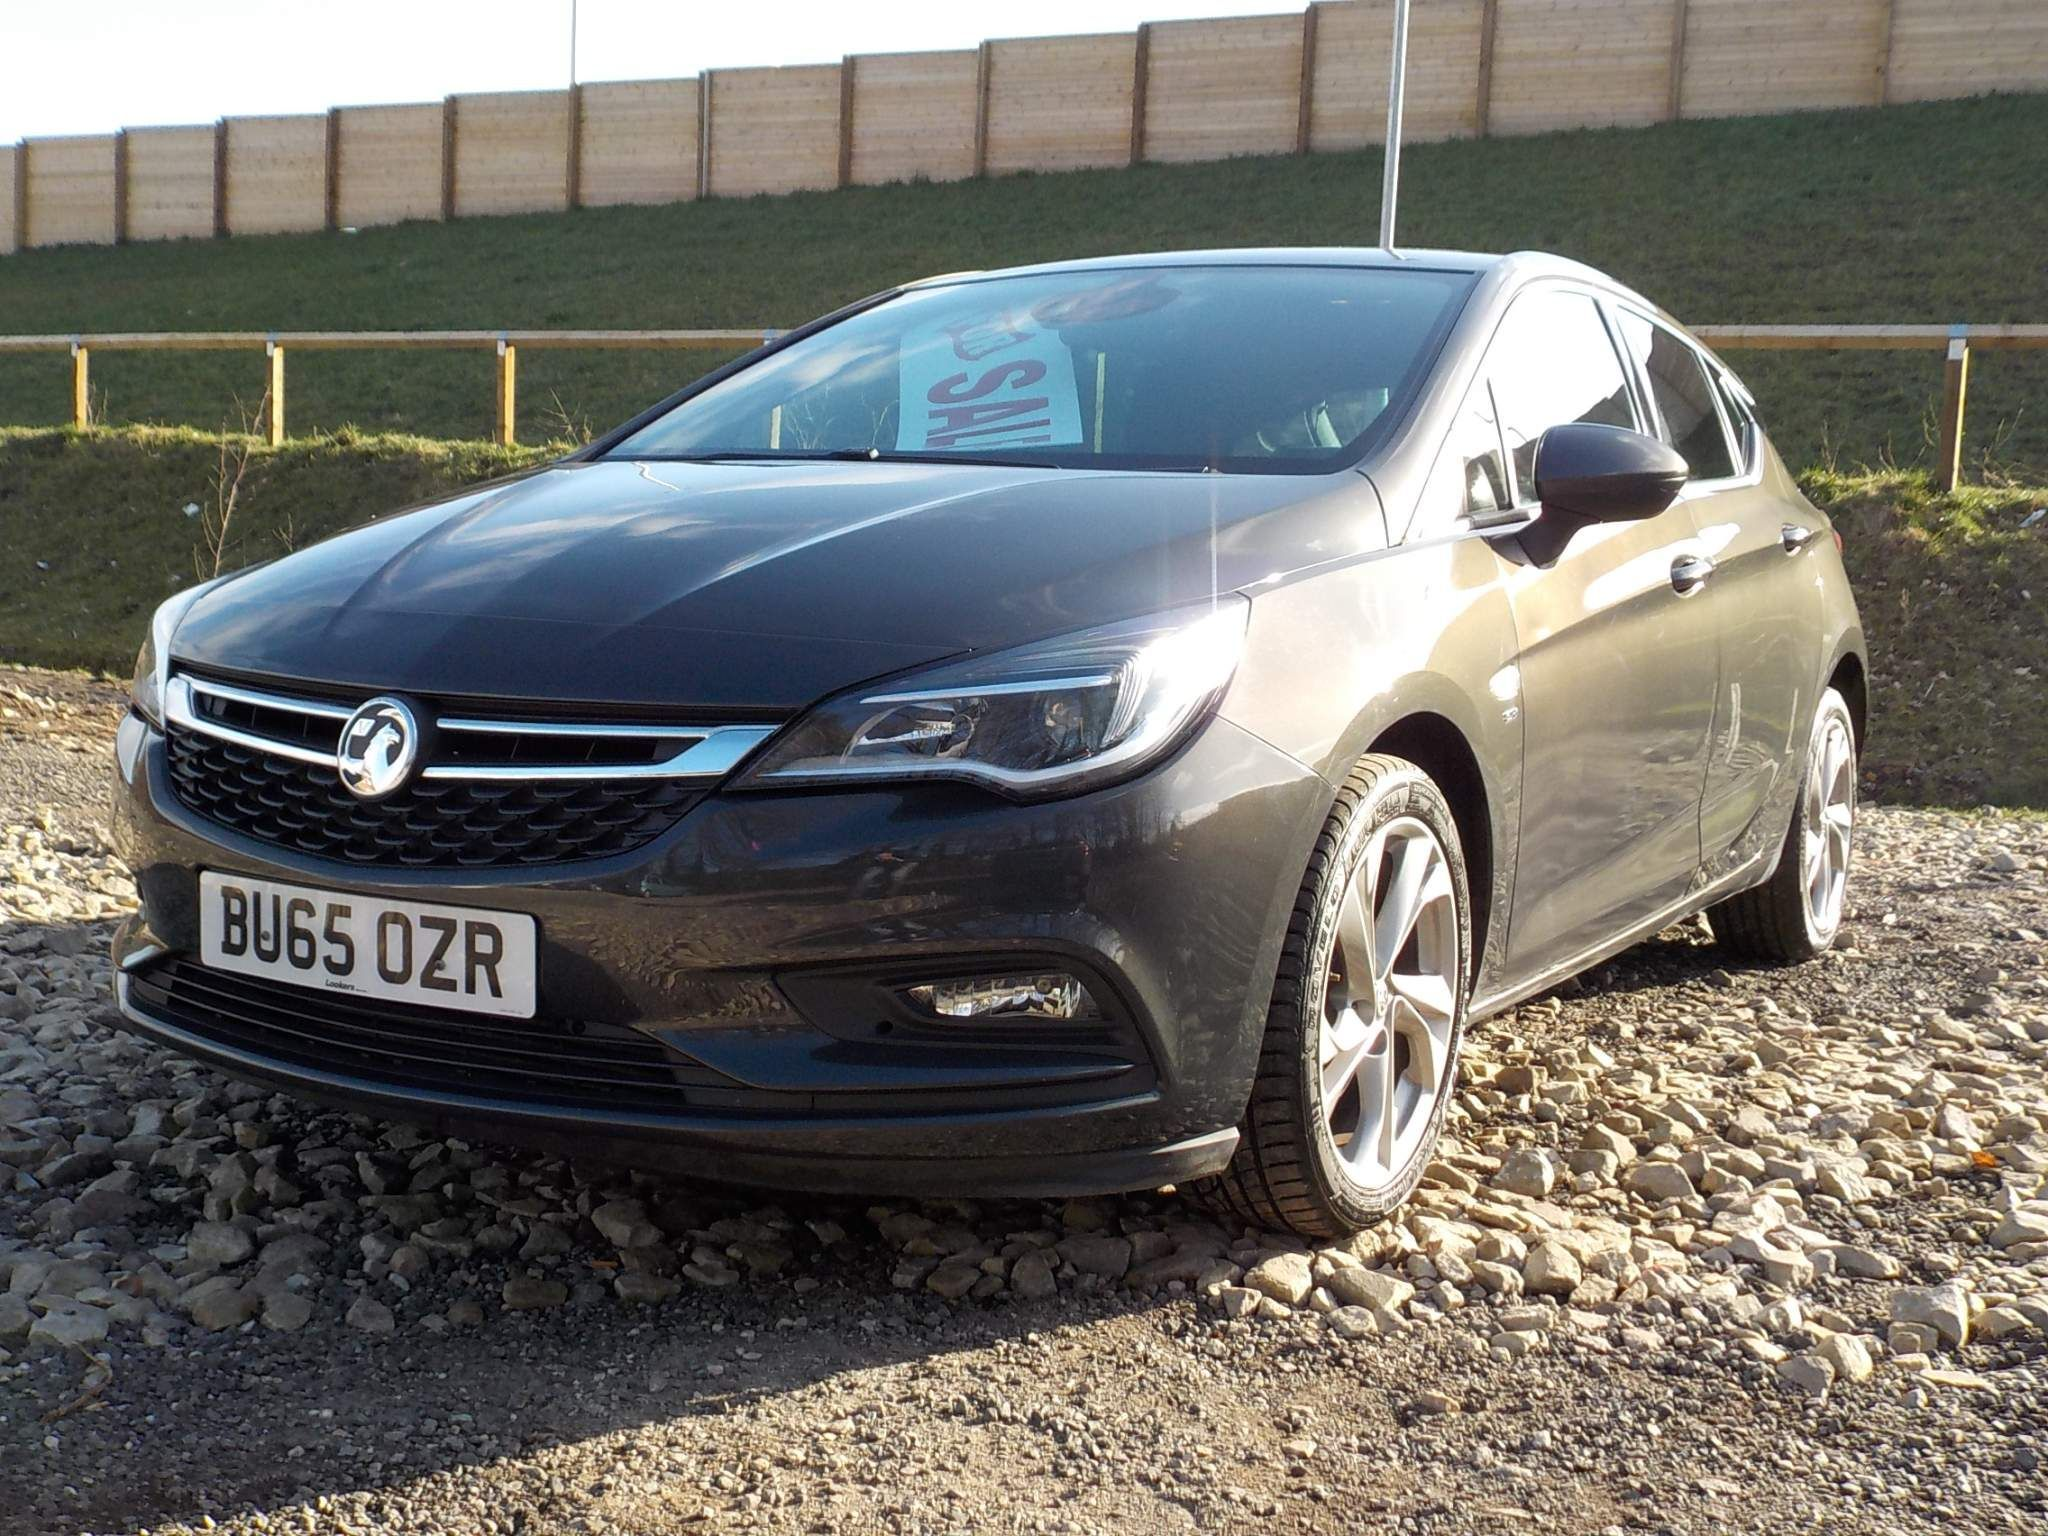 Vauxhall Astra 1.6 CDTi BlueInjection SRi Nav (s/s) 5dr